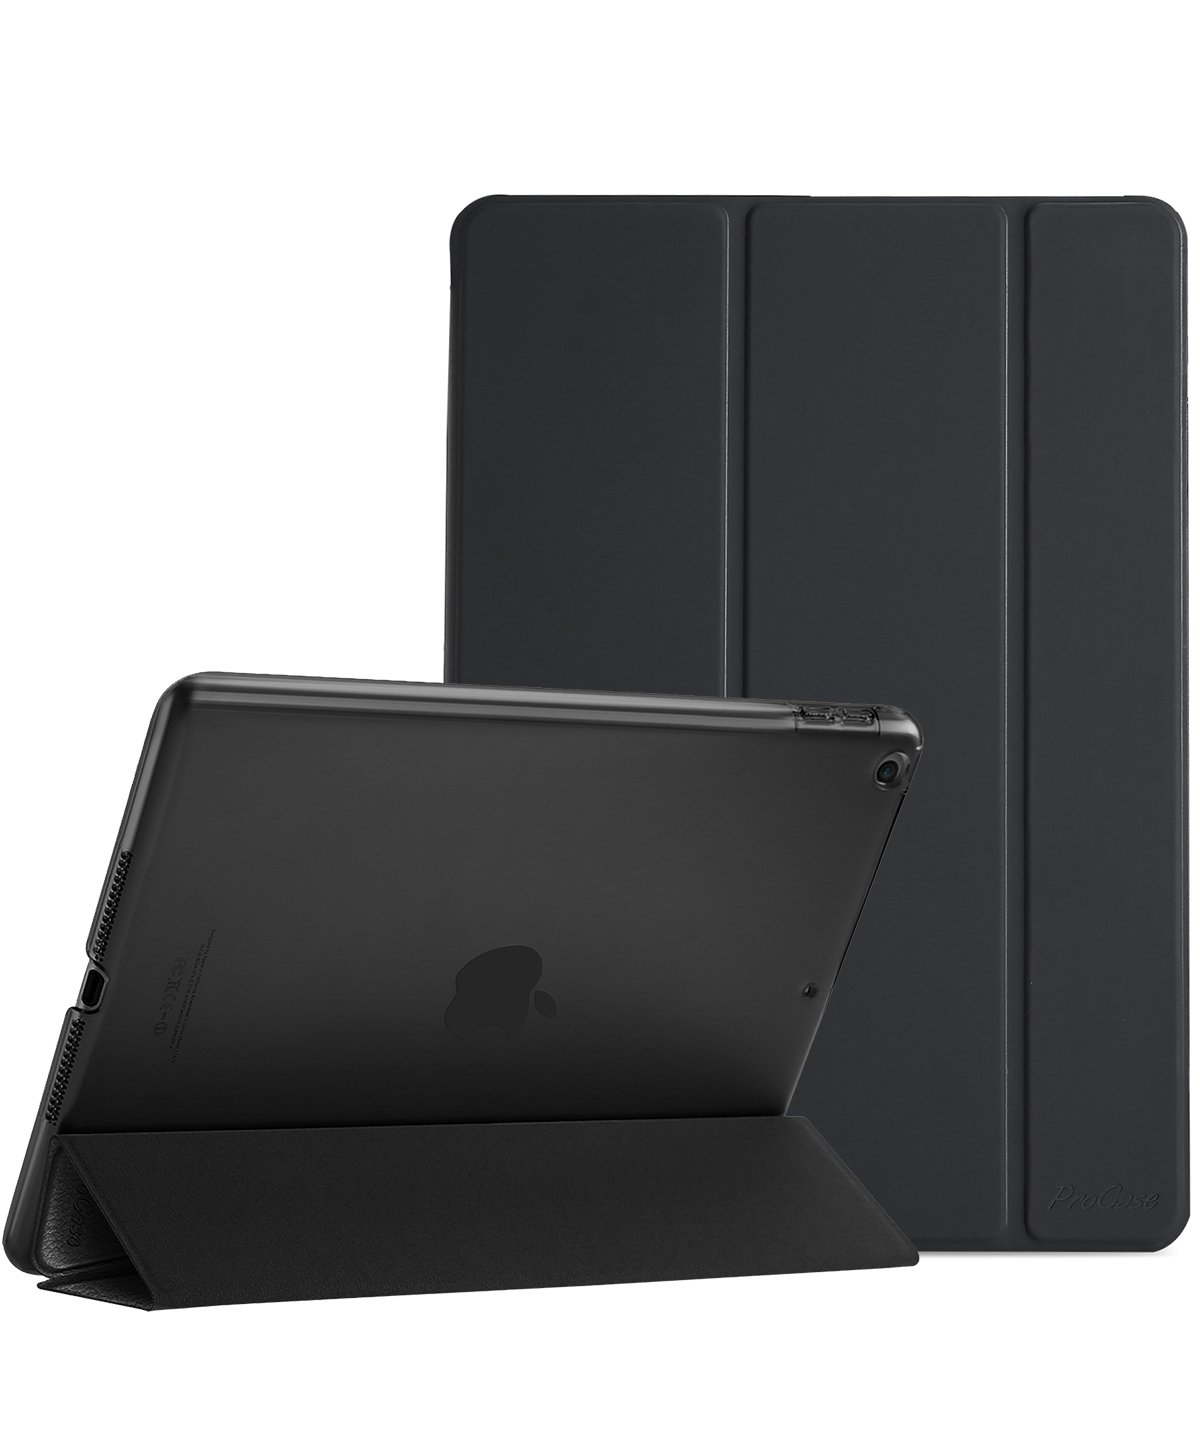 애플 아이패드 6세대 97인치 ProCase 경량 반투명 스마트 커버 - 15 컬러 ProCase iPad 97 Case - Ultra Slim Lightweight Stand Case with Translucent Frosted Back Smart Cover